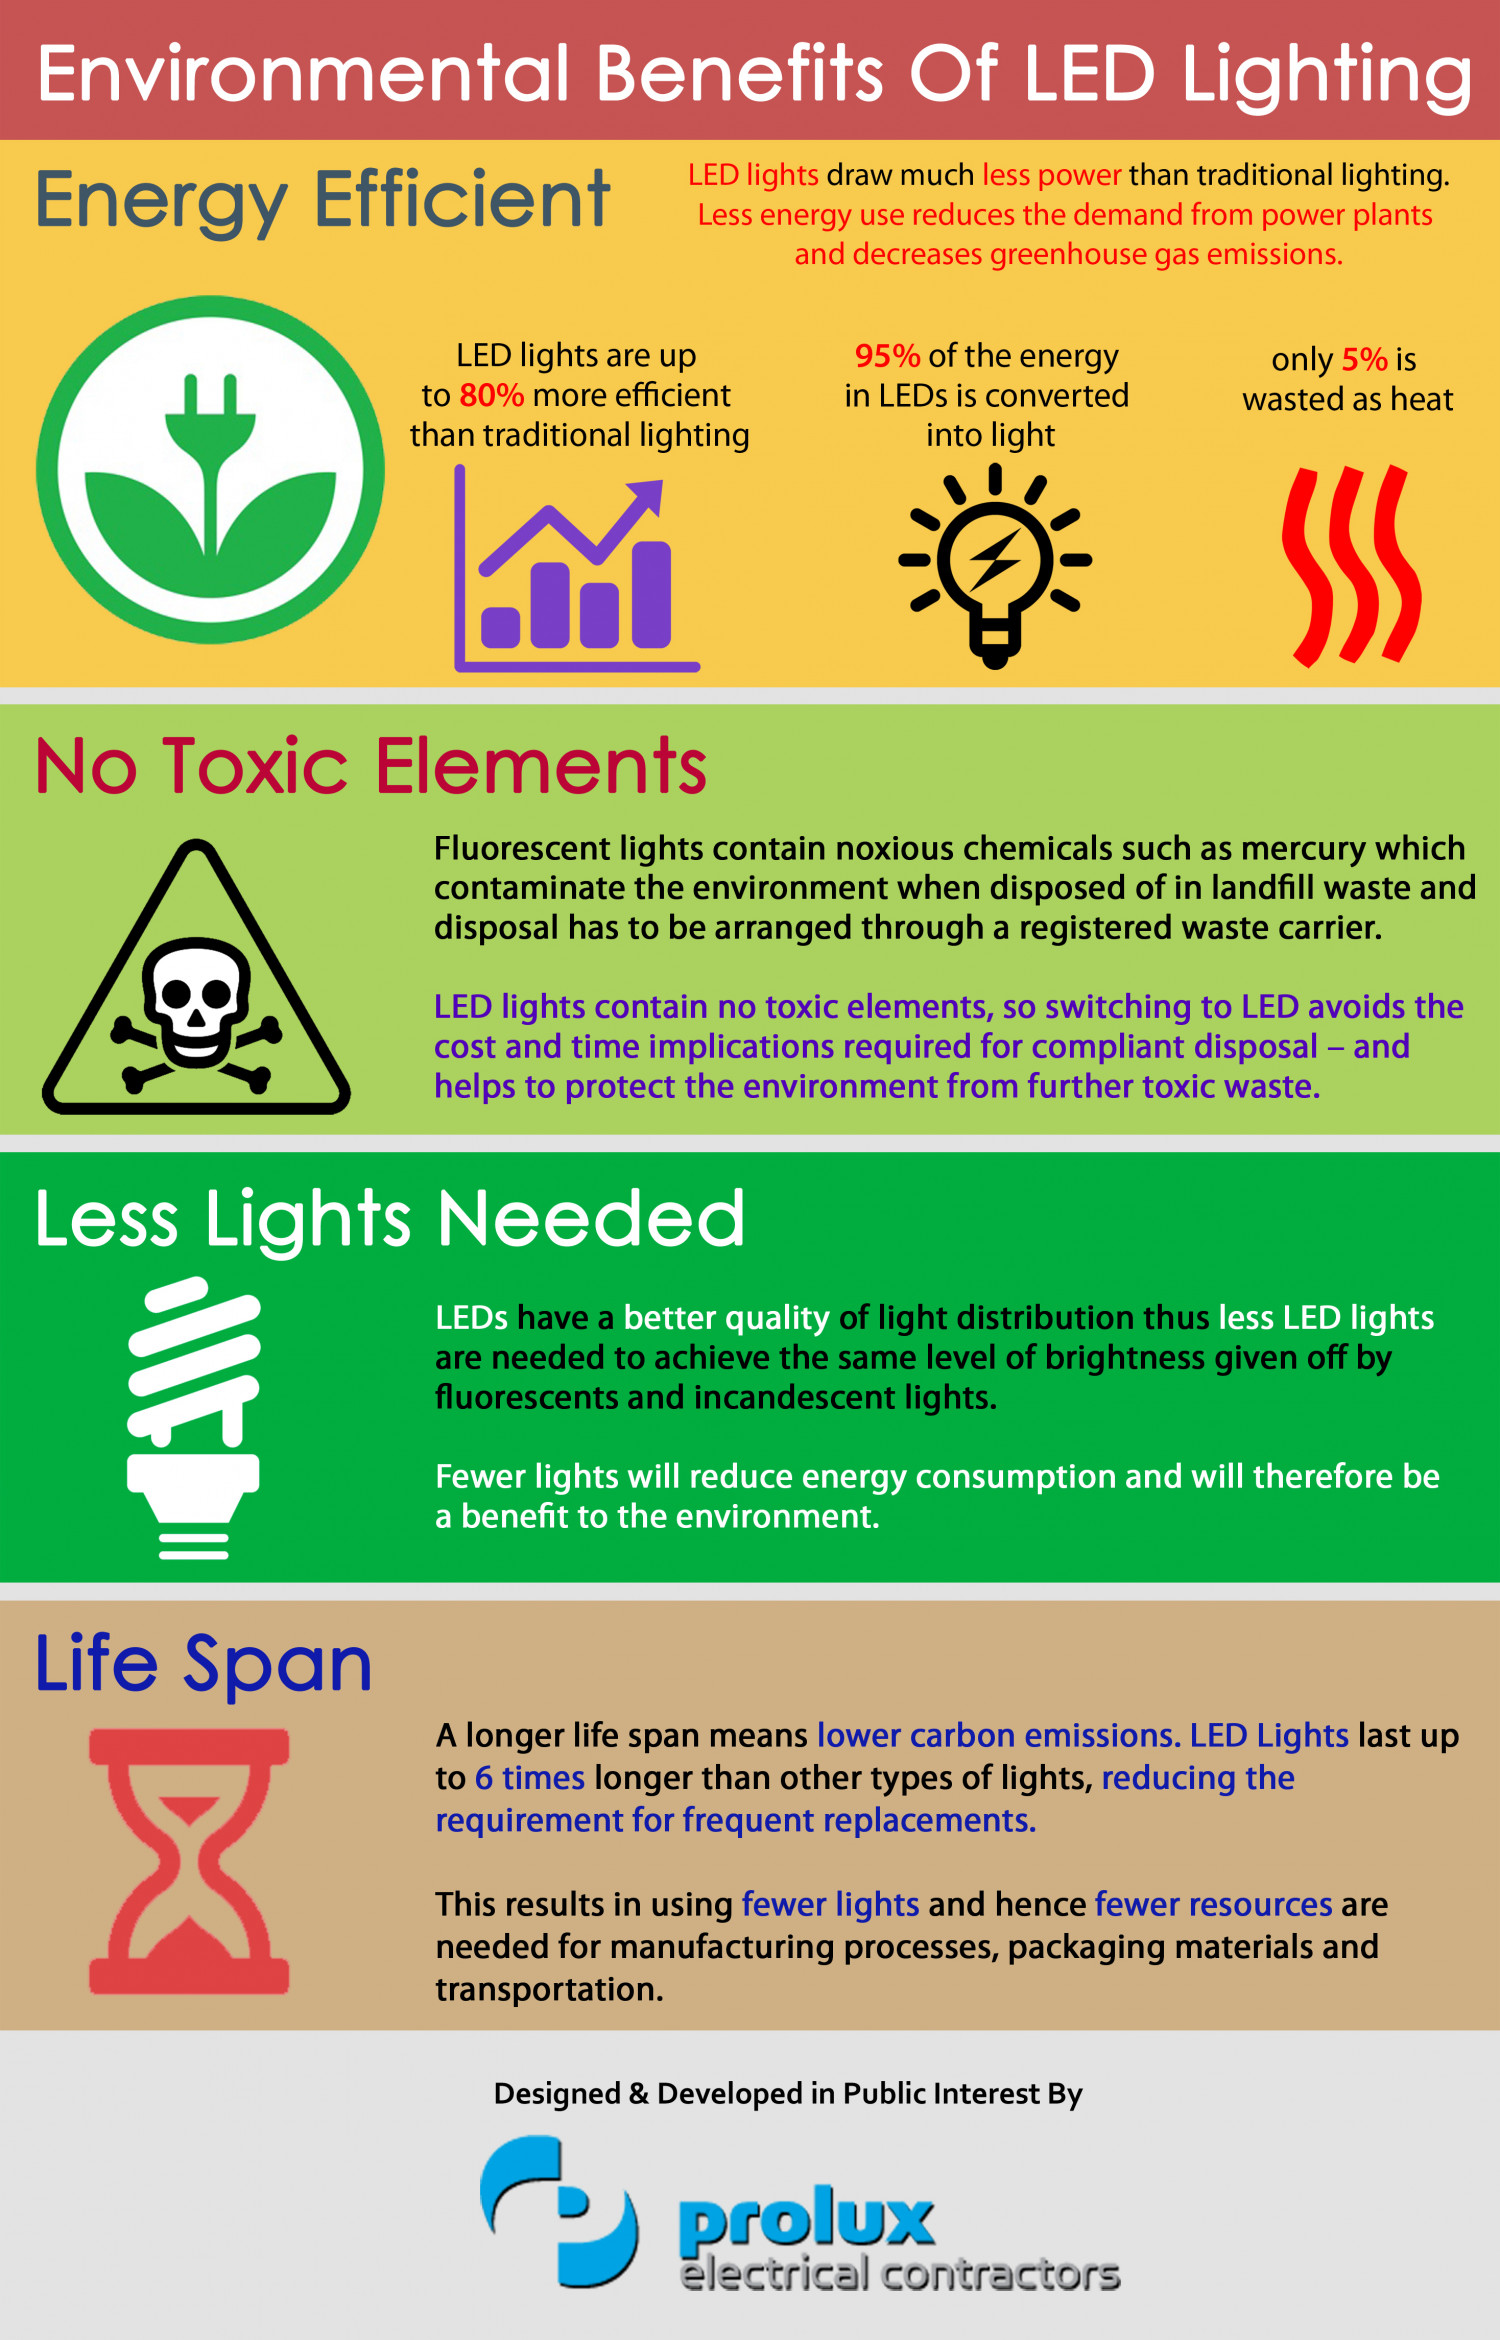 enviornmental-benefits-of-led-lighting_5